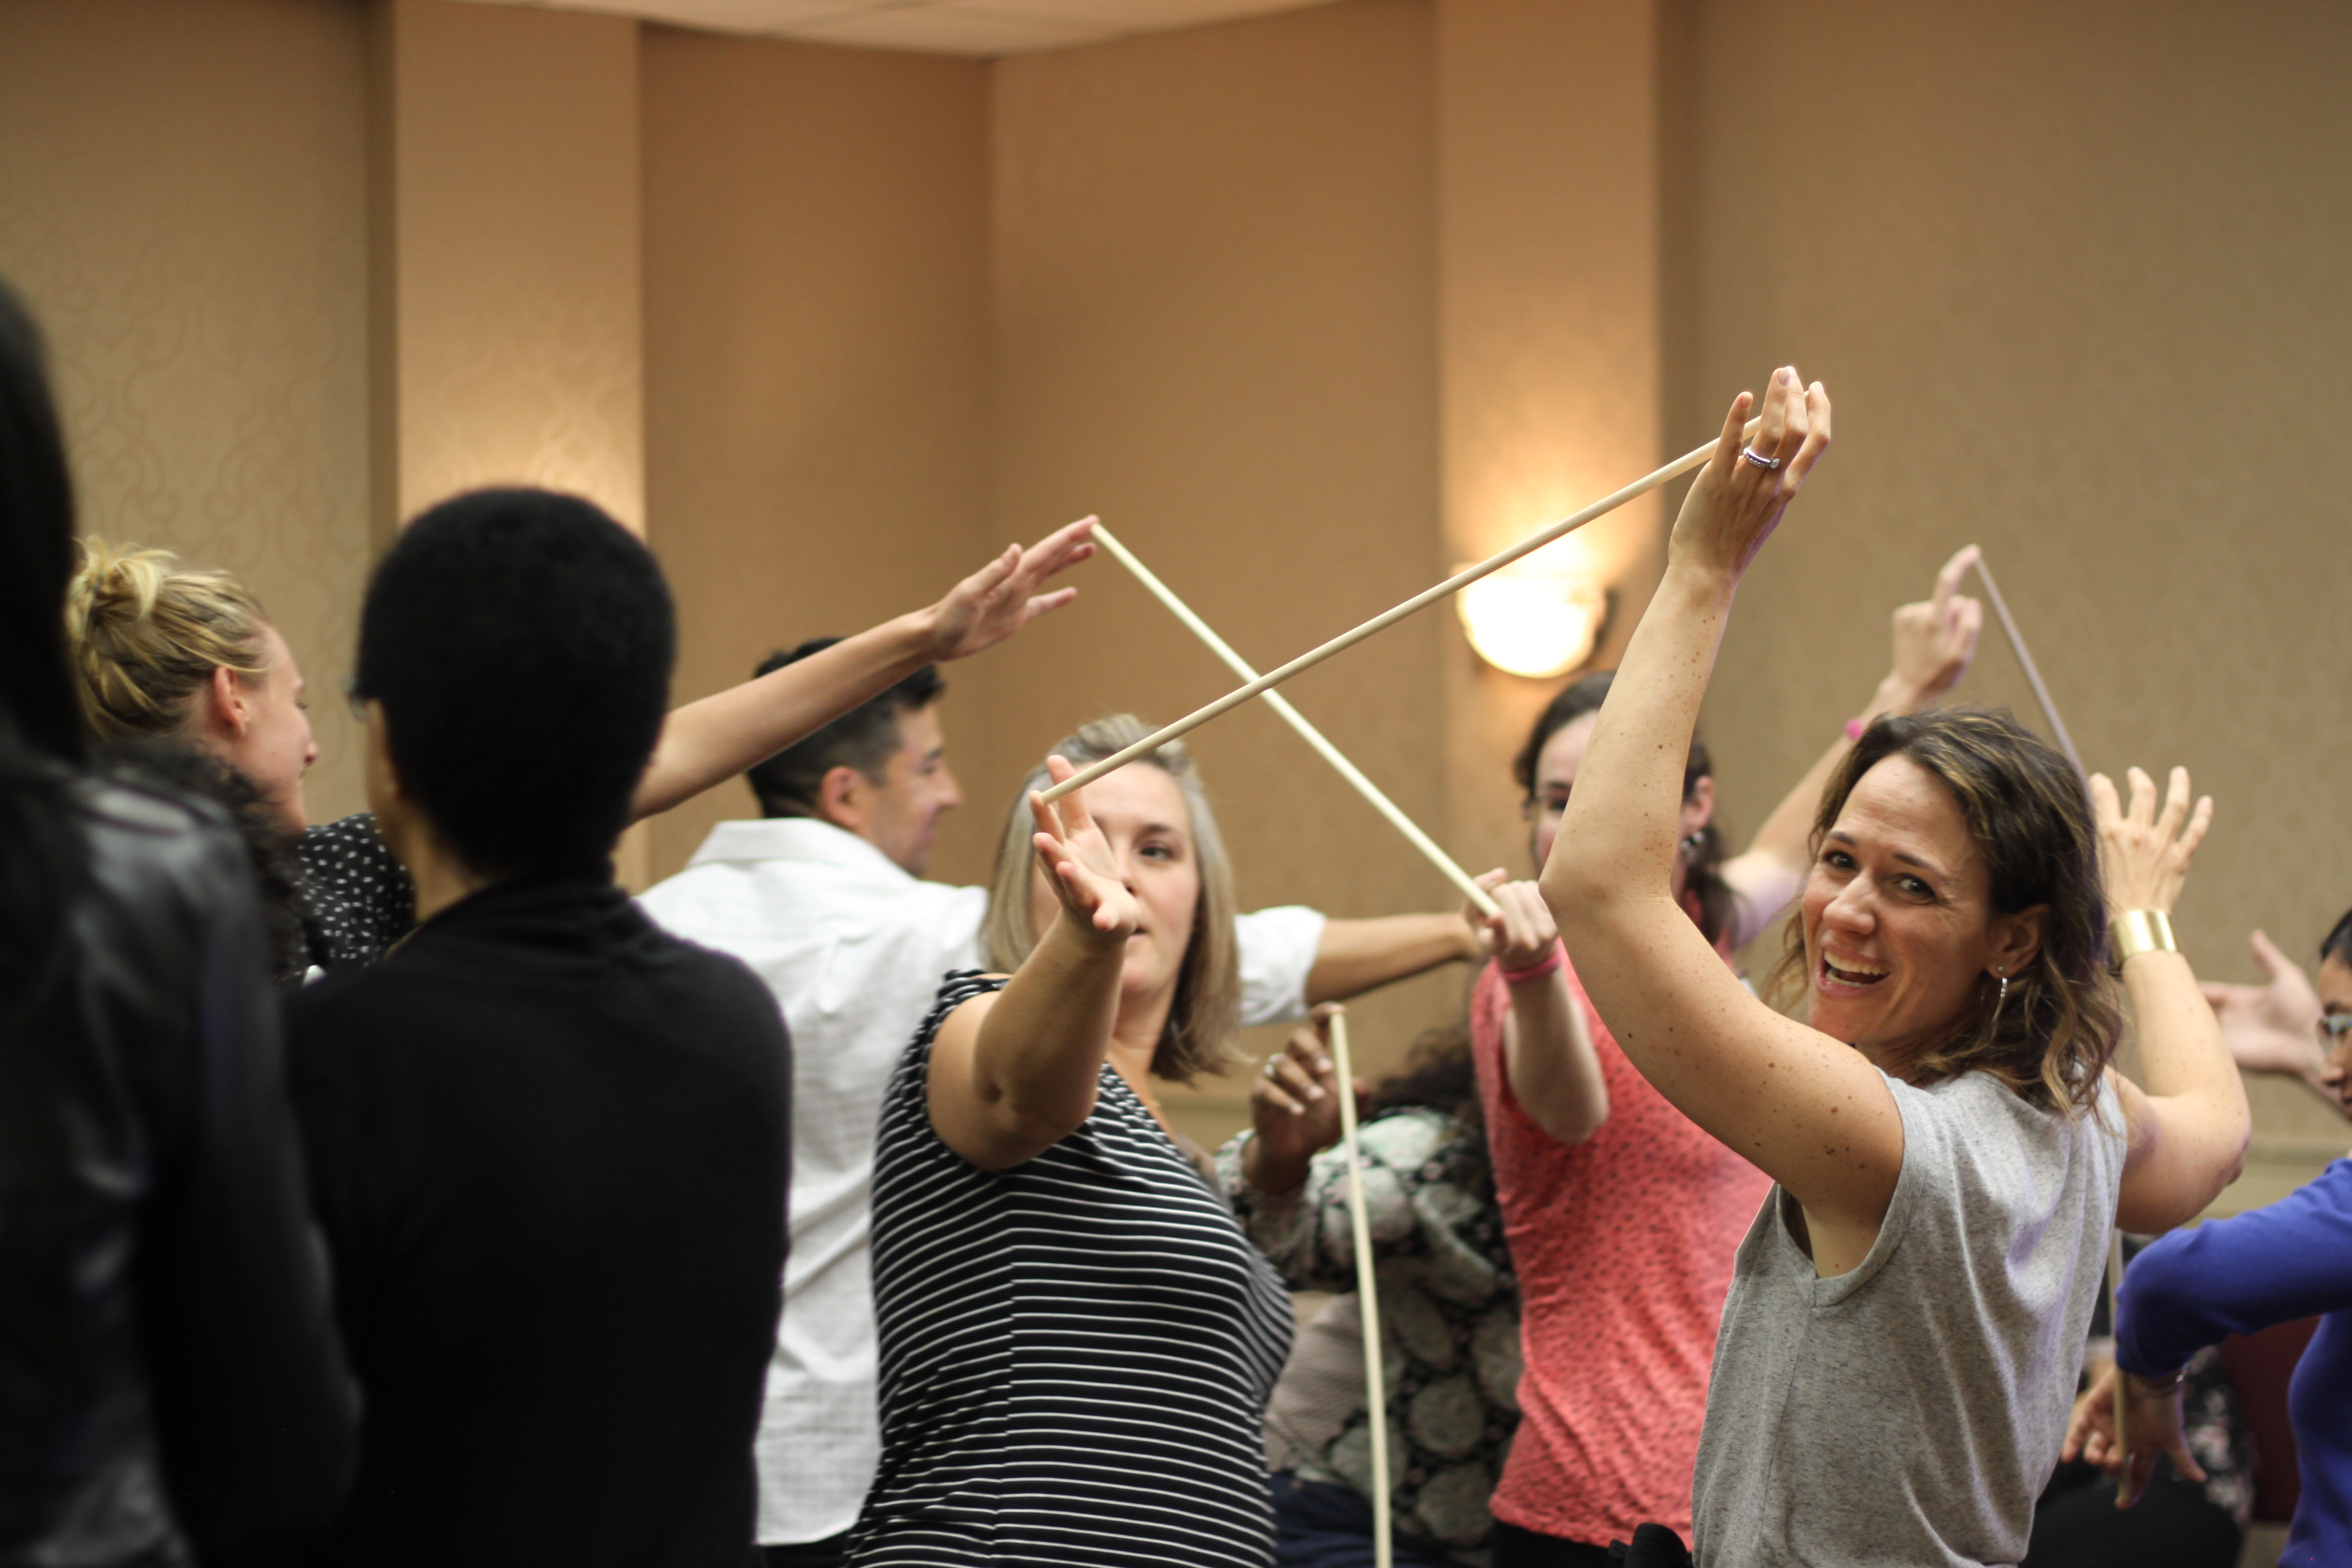 A group of women in a room work together to hold sticks in the air